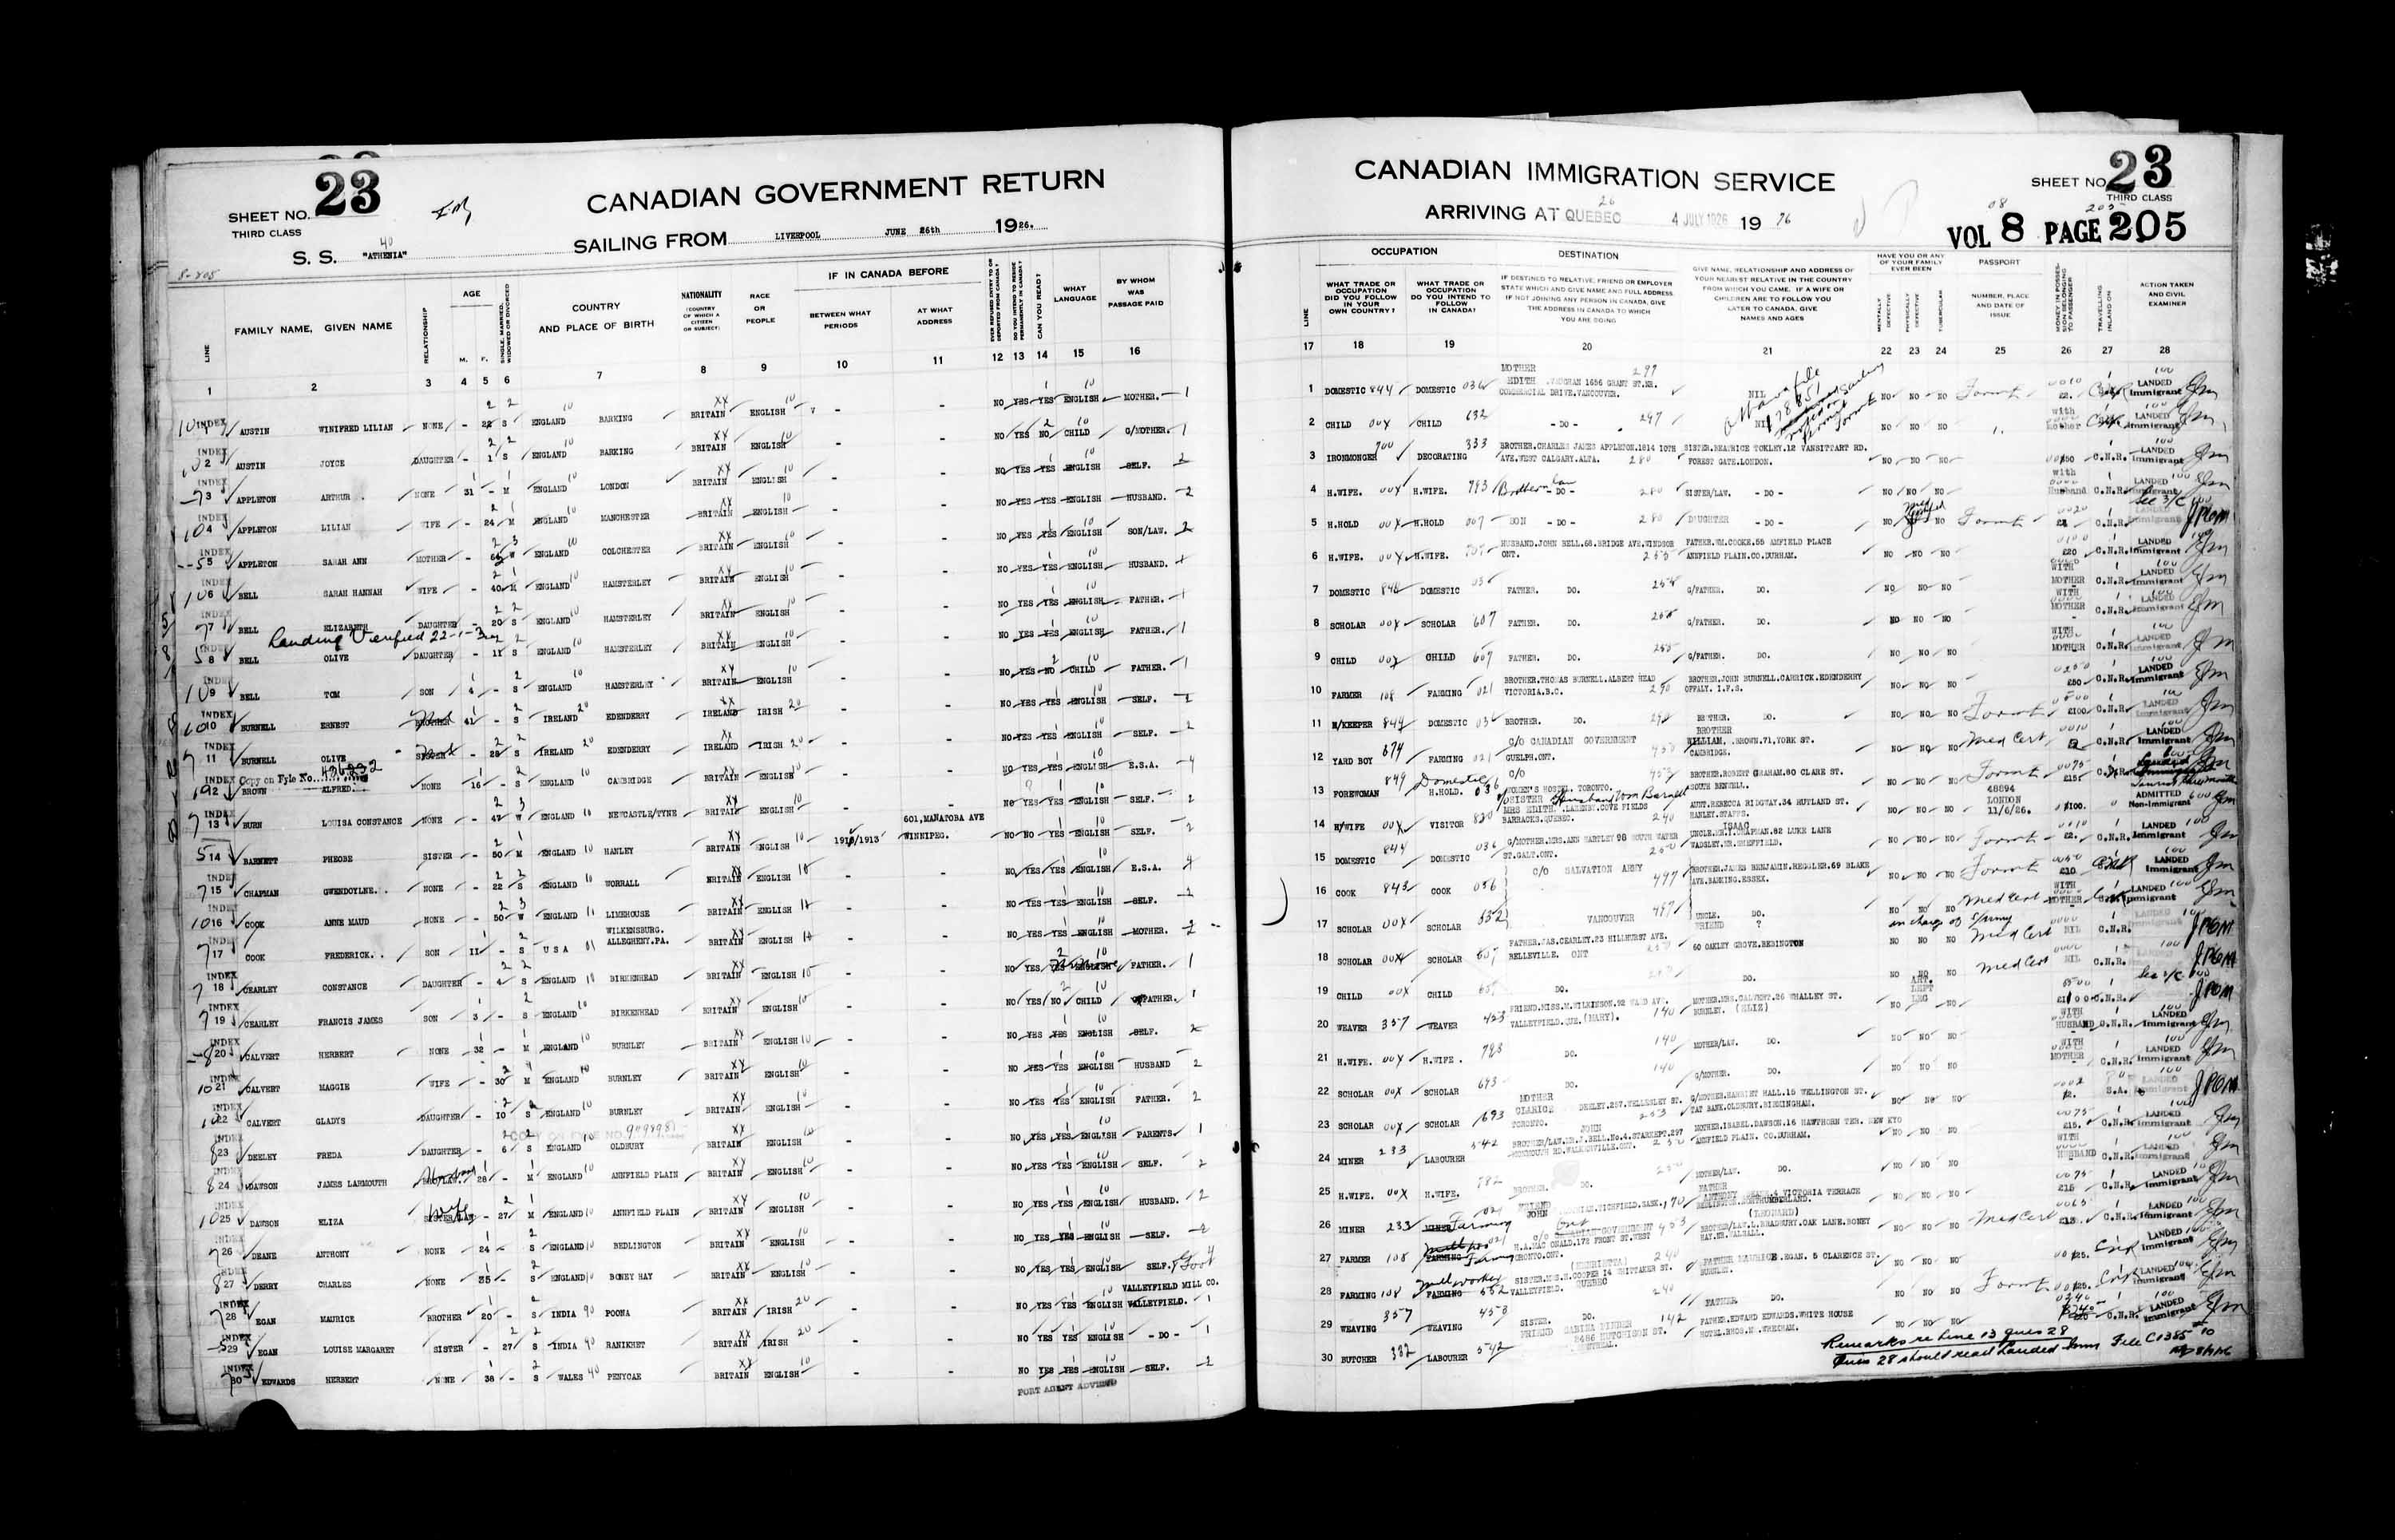 Title: Passenger Lists: Quebec City (1925-1935) - Mikan Number: 134839 - Microform: t-14724